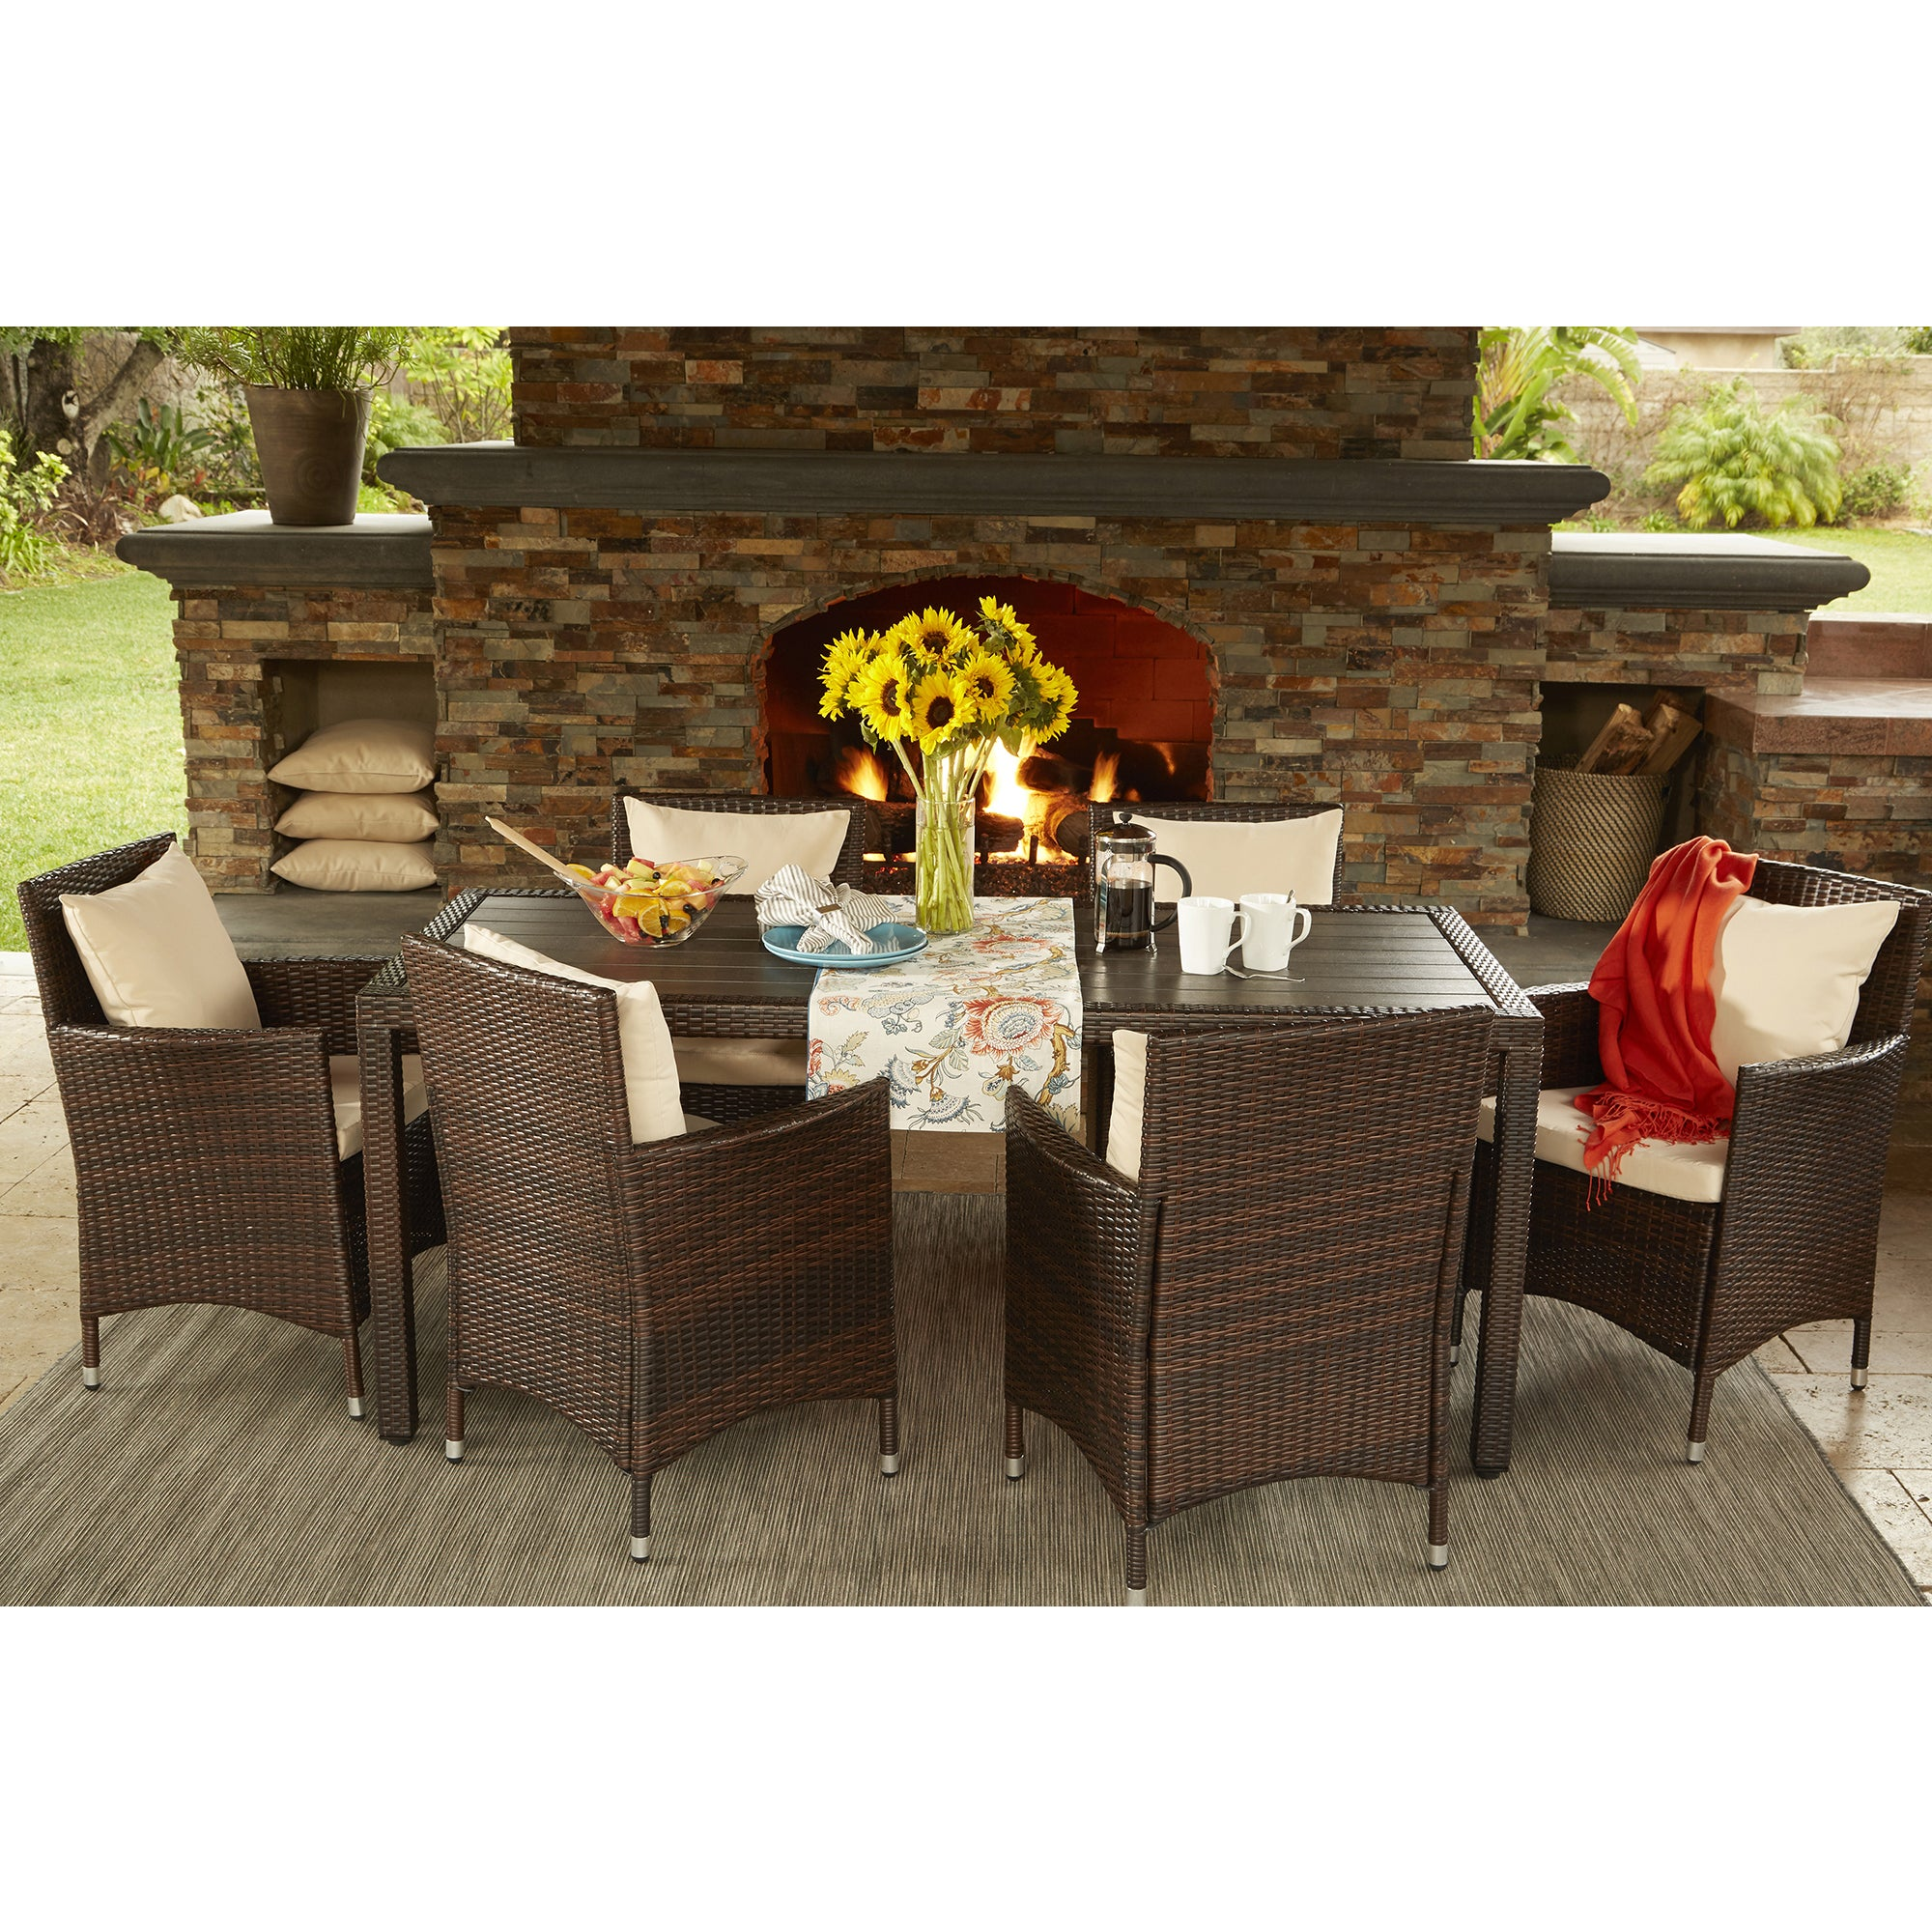 Rattan Patio Furniture | Find Great Outdoor Seating & Dining Deals ...